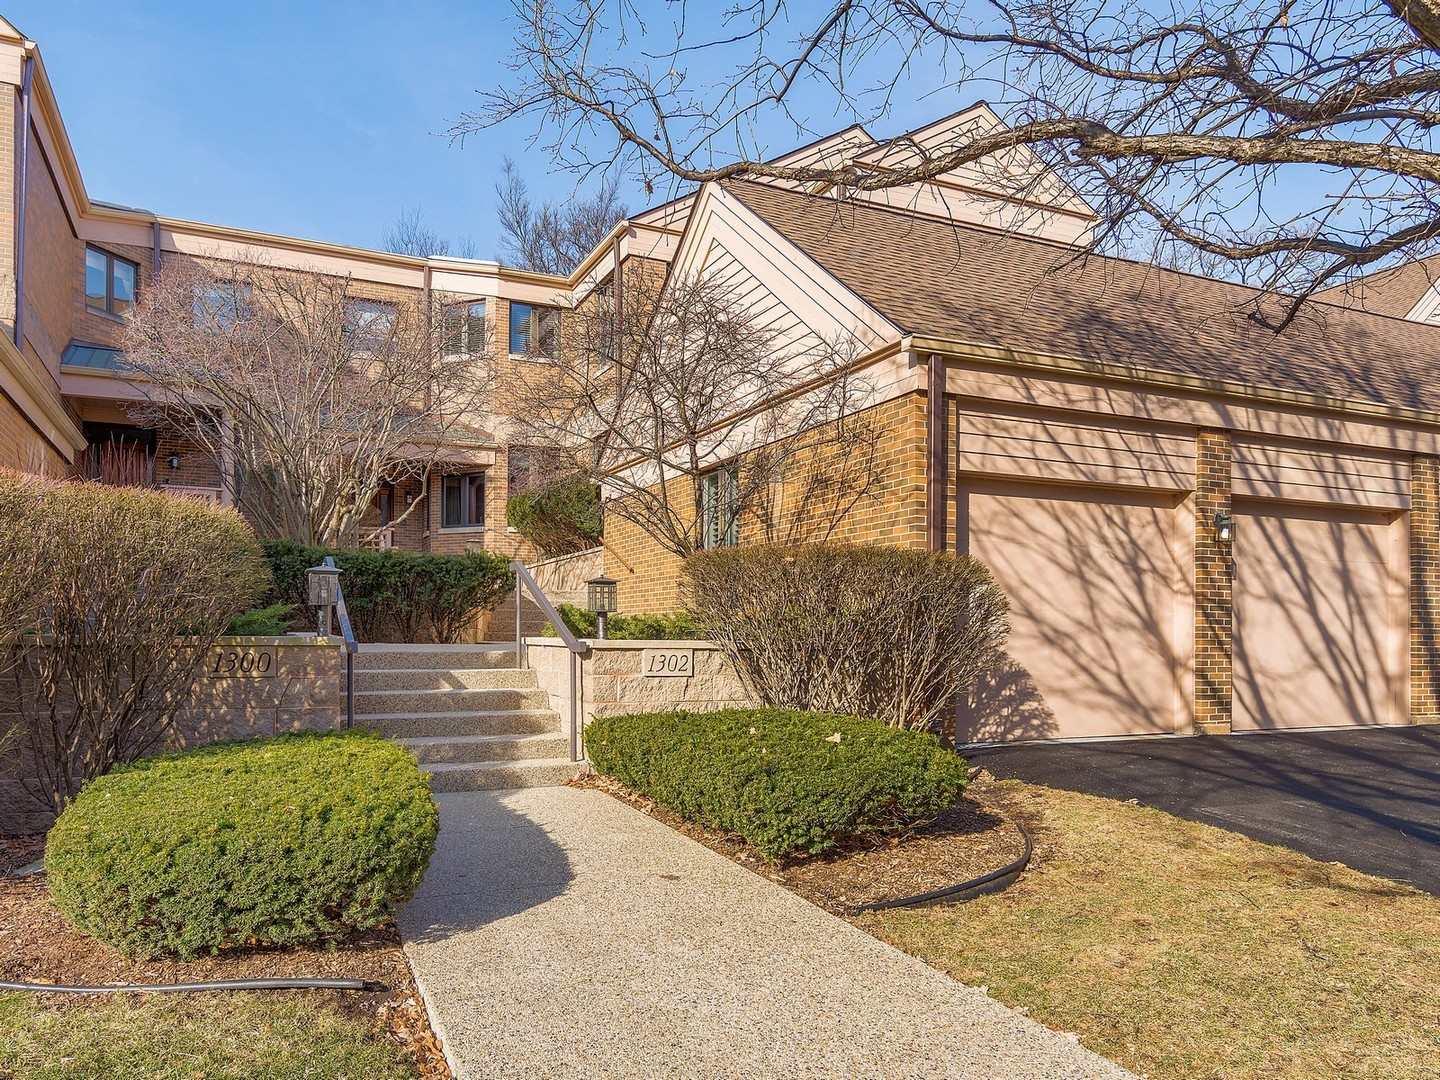 Single Family Home for Sale at 1302 Hawthorne Ln 1302 Hawthorne Ln Unit 1302 Hinsdale, Illinois, 60521 United States